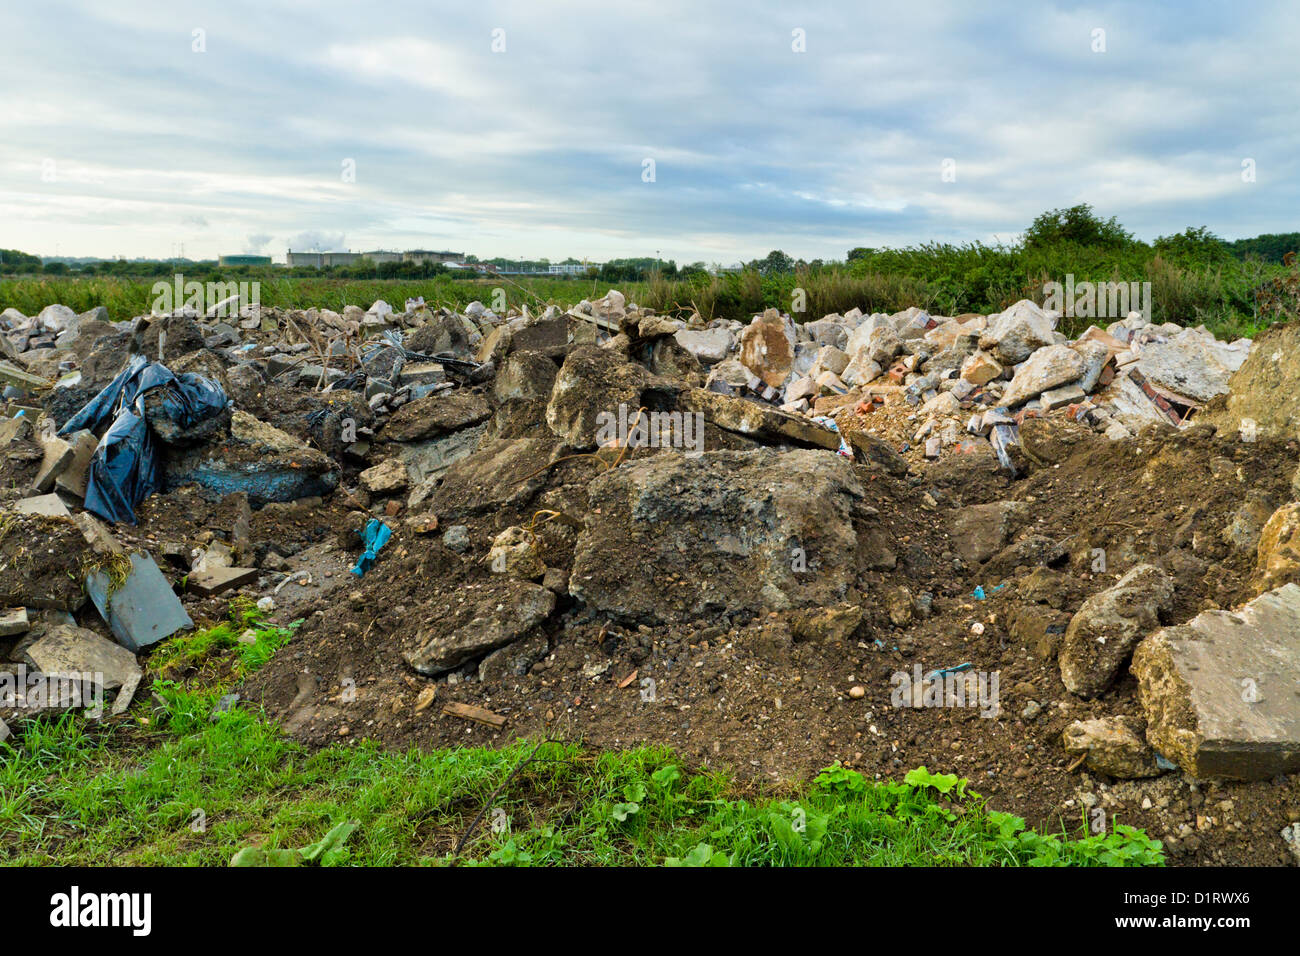 Fly tipping. Illegal dumping of construction waste on farmland, Nottinghamshire, England, UK - Stock Image